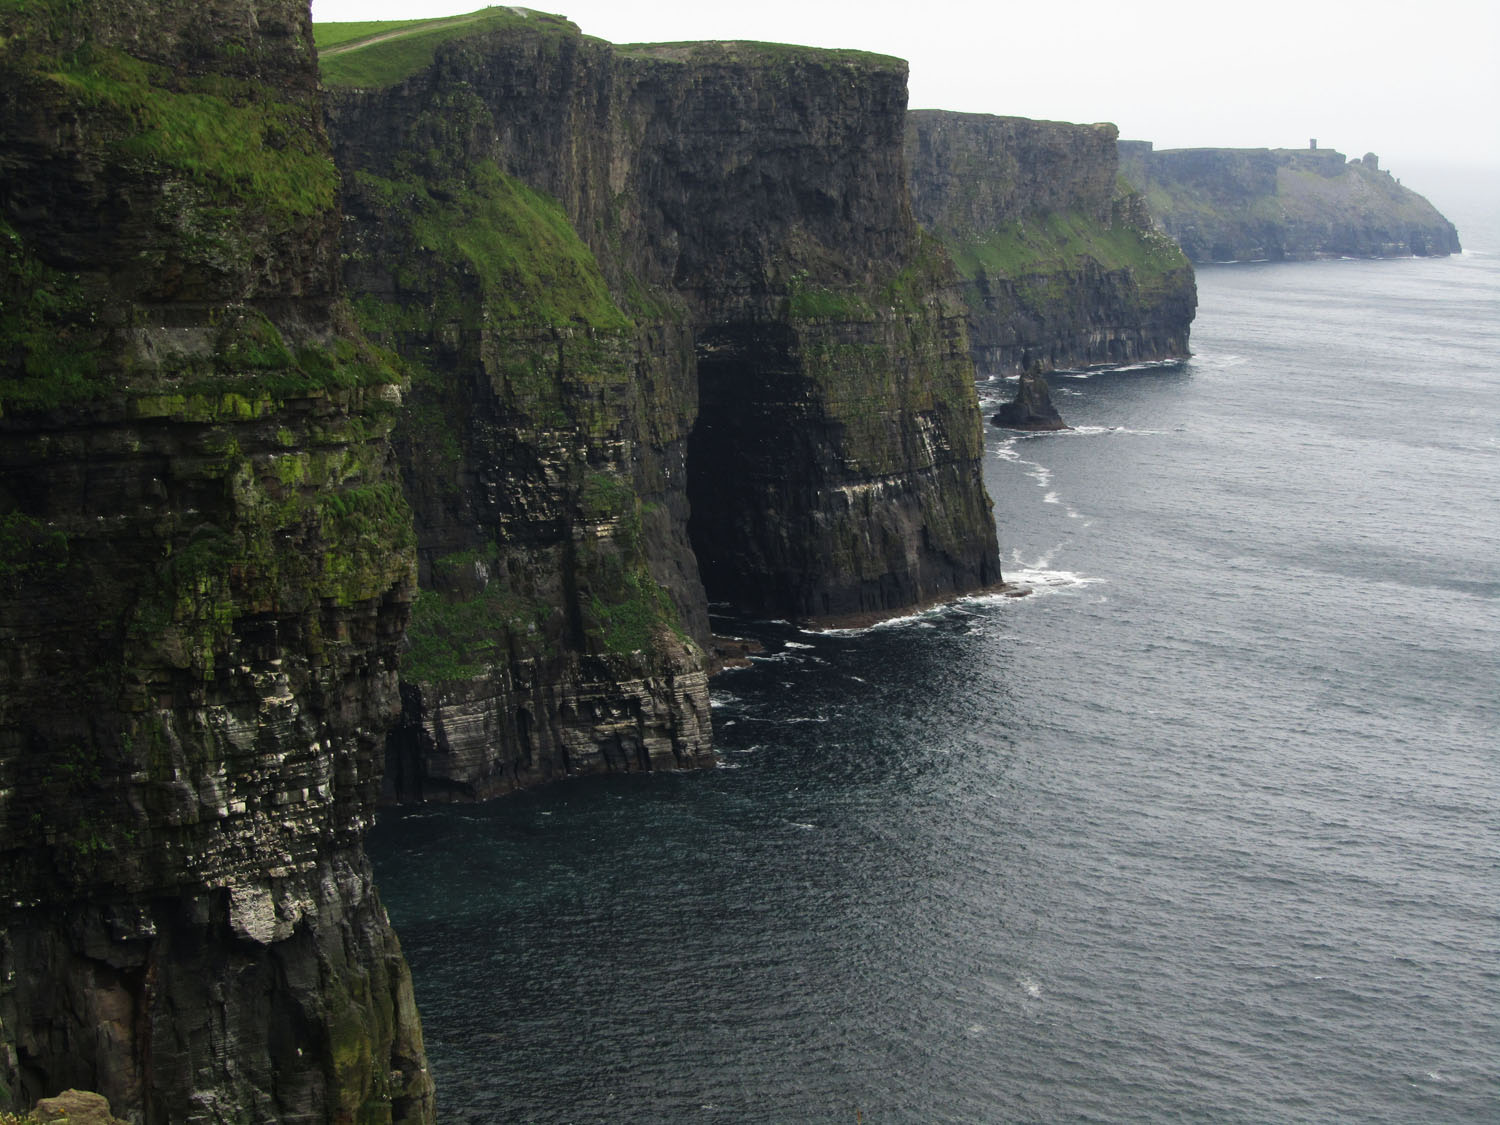 Ireland-Sights-And-Scenery-Cliffs-Of-Moher